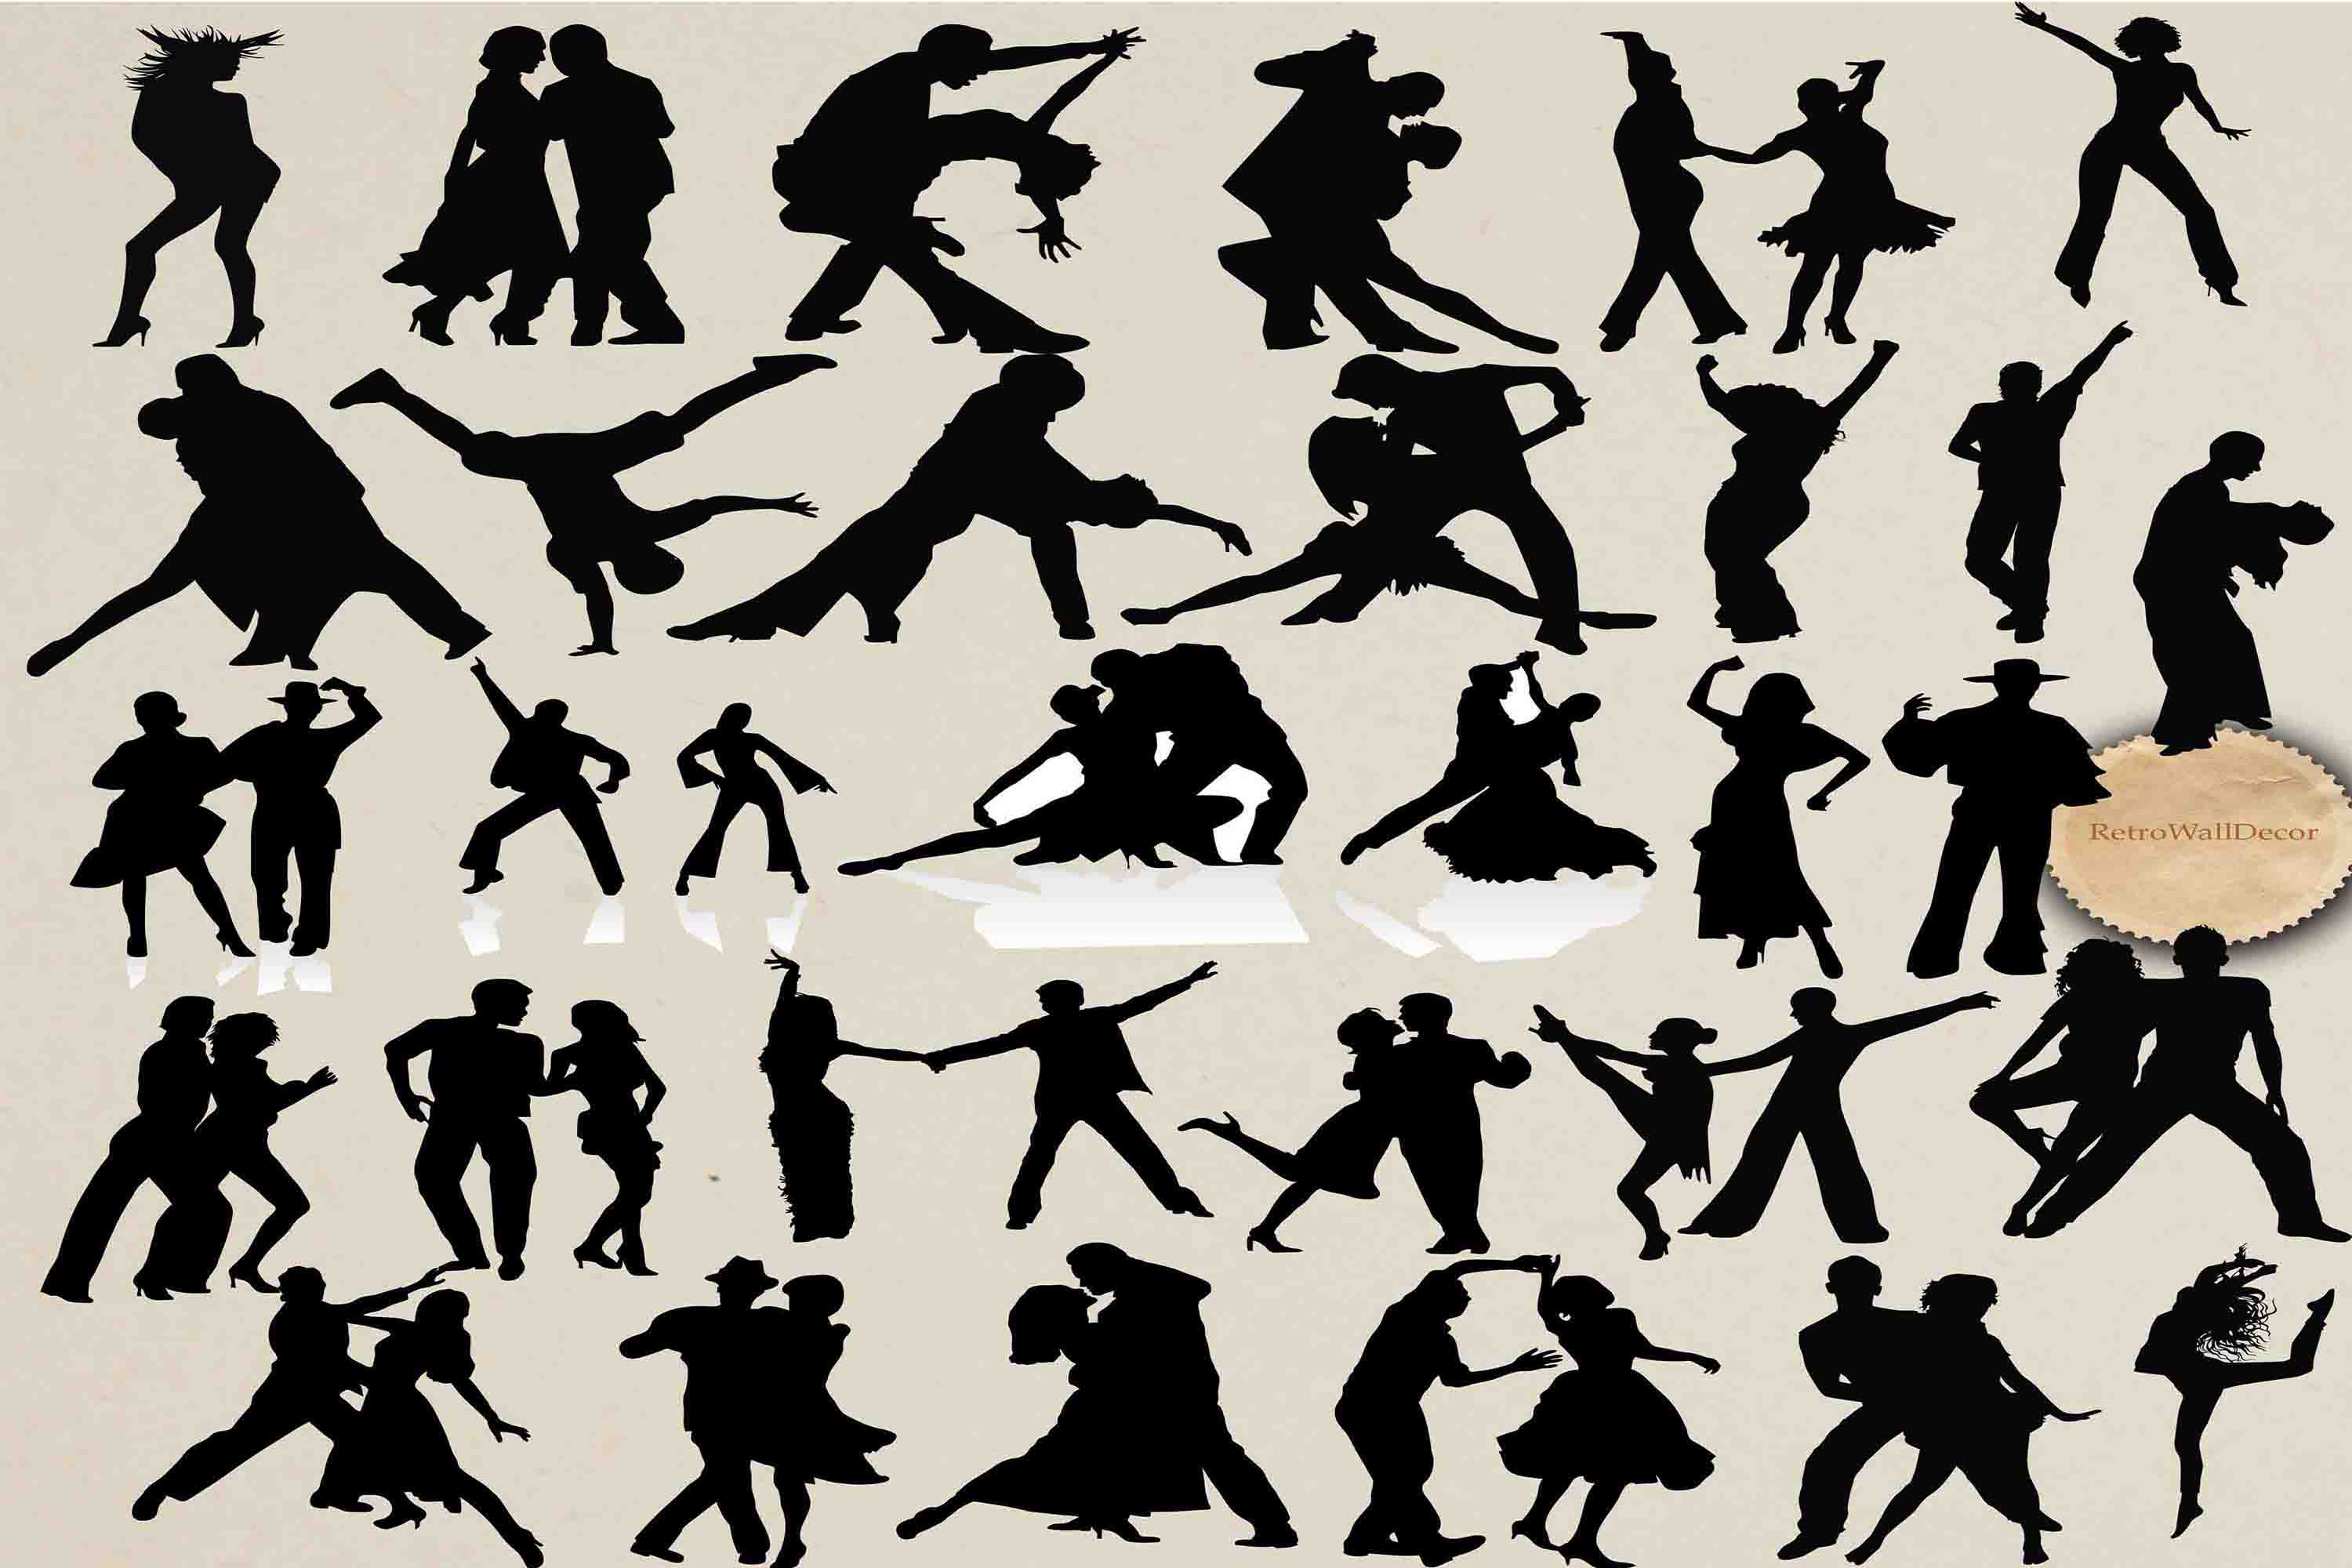 Download Free Dancing Silhouettes Graphic By Retrowalldecor Creative Fabrica for Cricut Explore, Silhouette and other cutting machines.